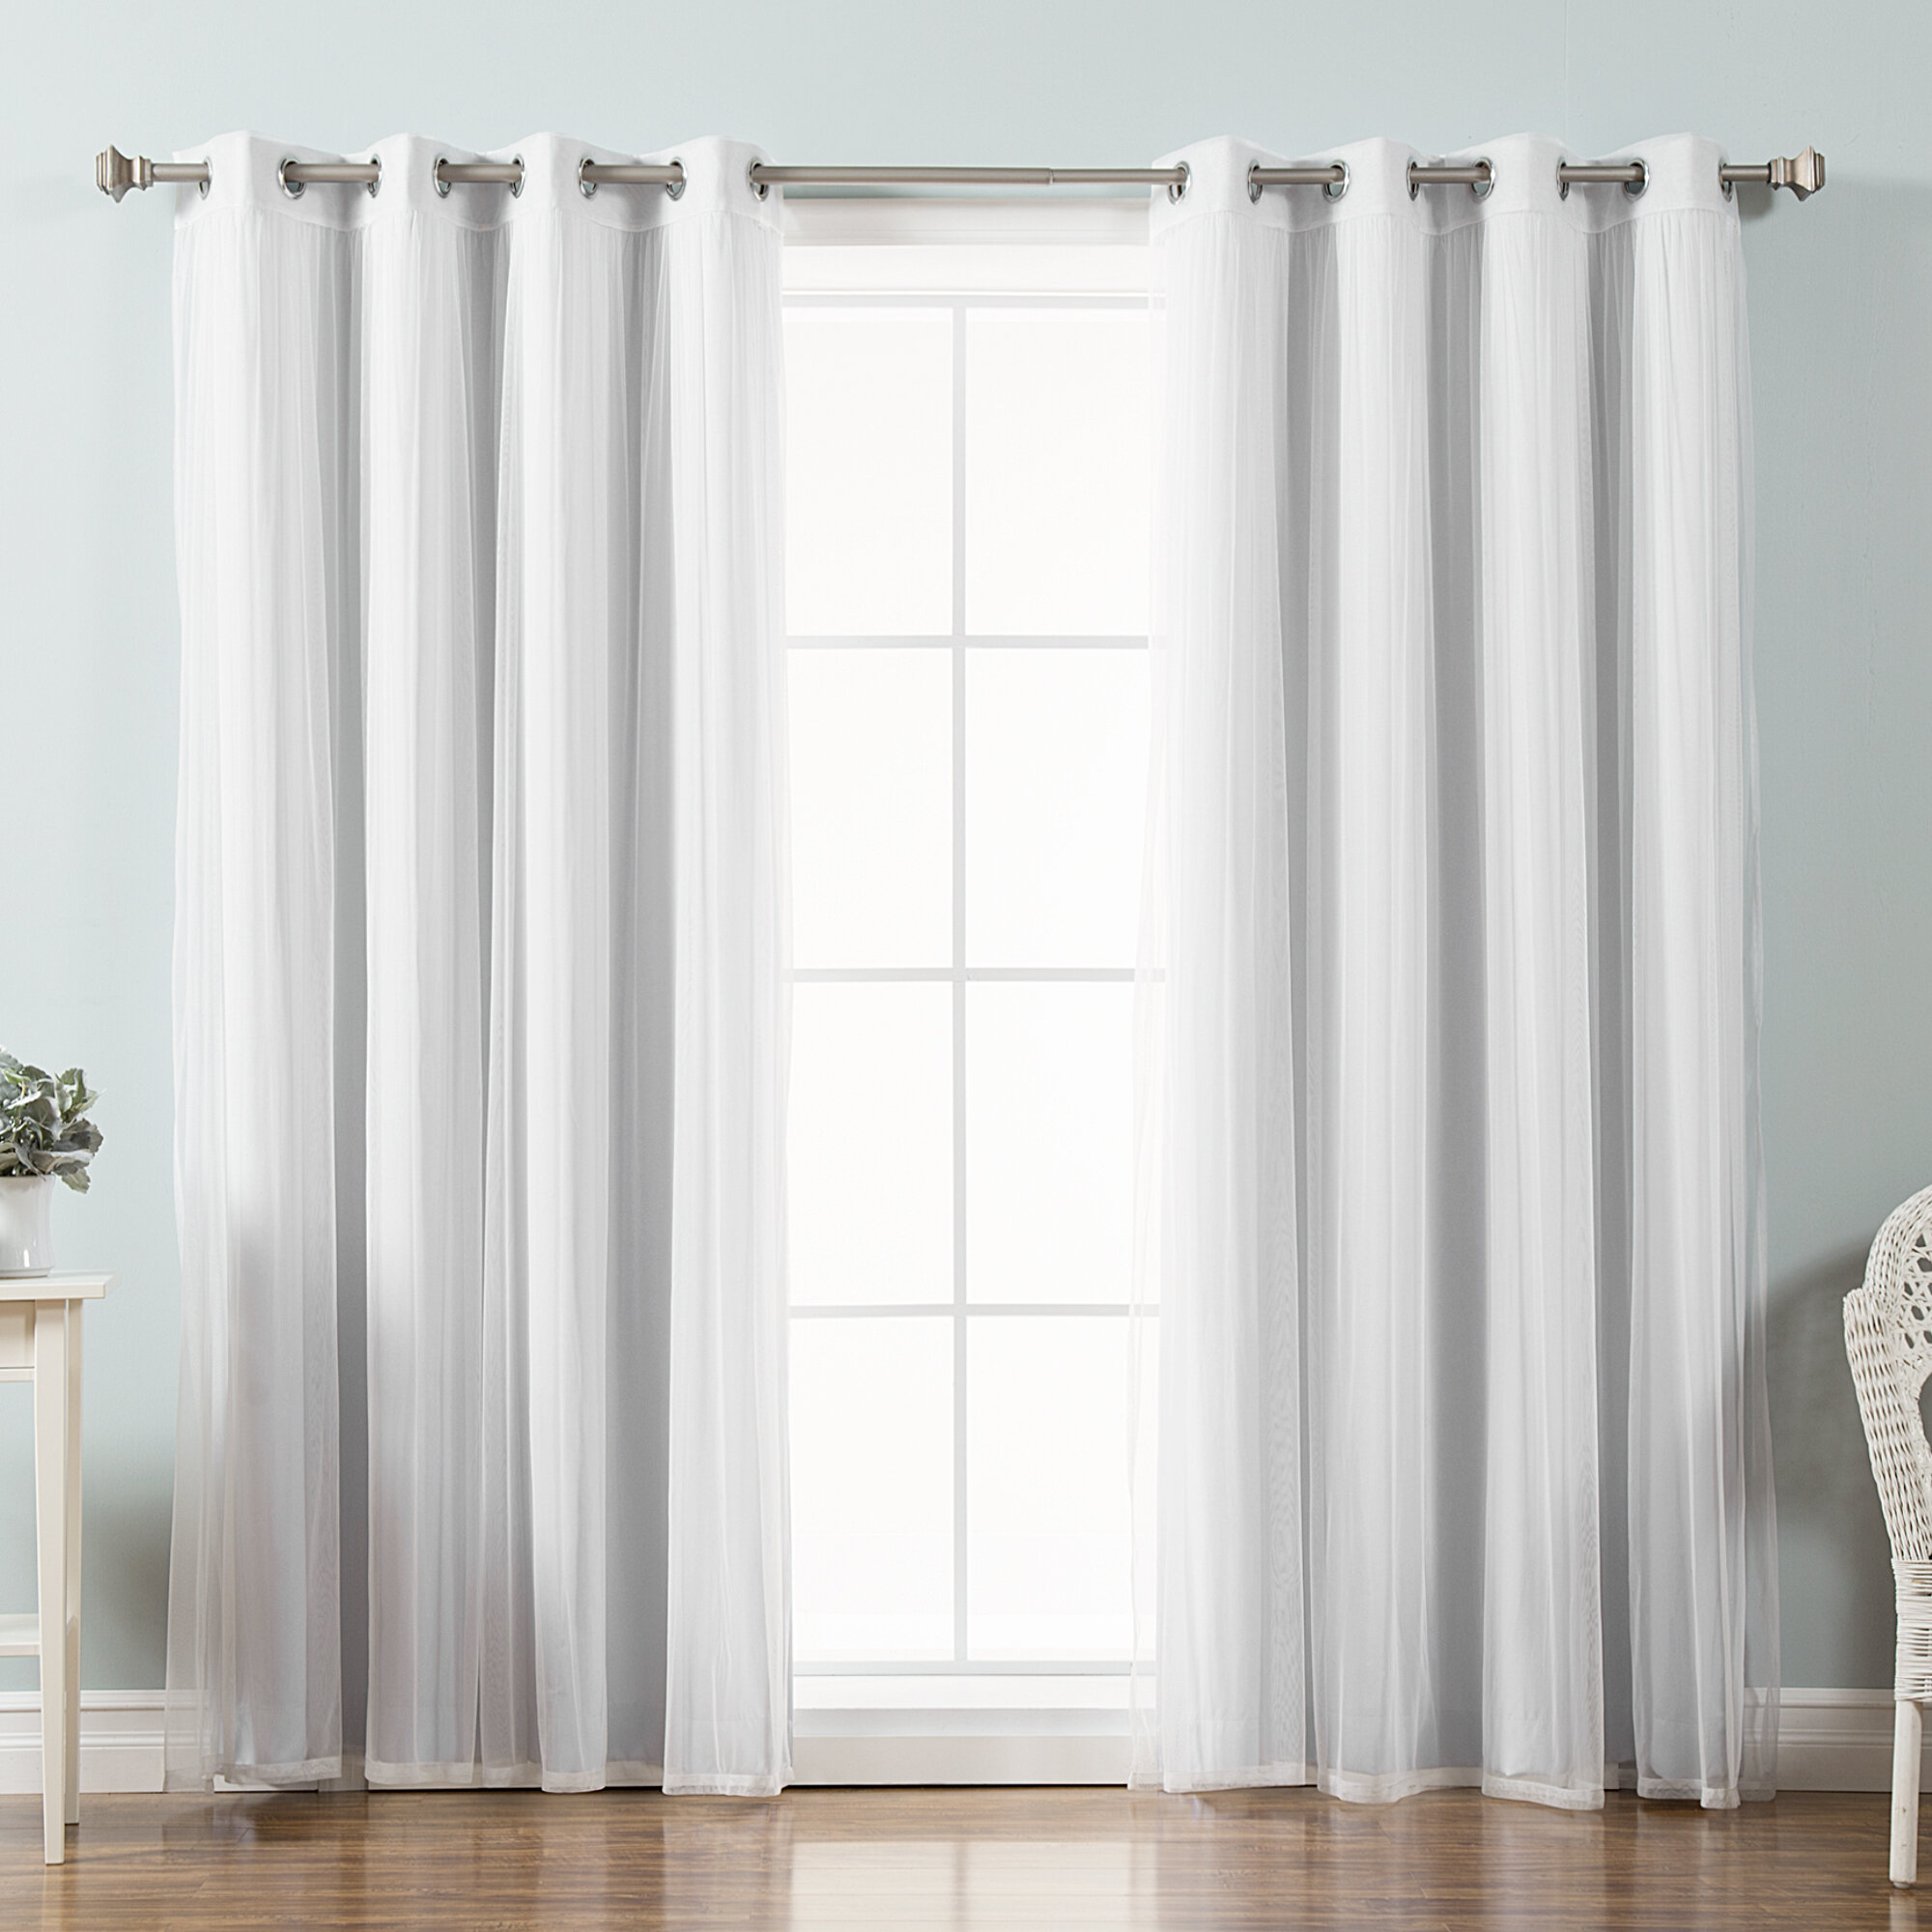 vattenax admirable curtain s diverting pe panels grey panel white